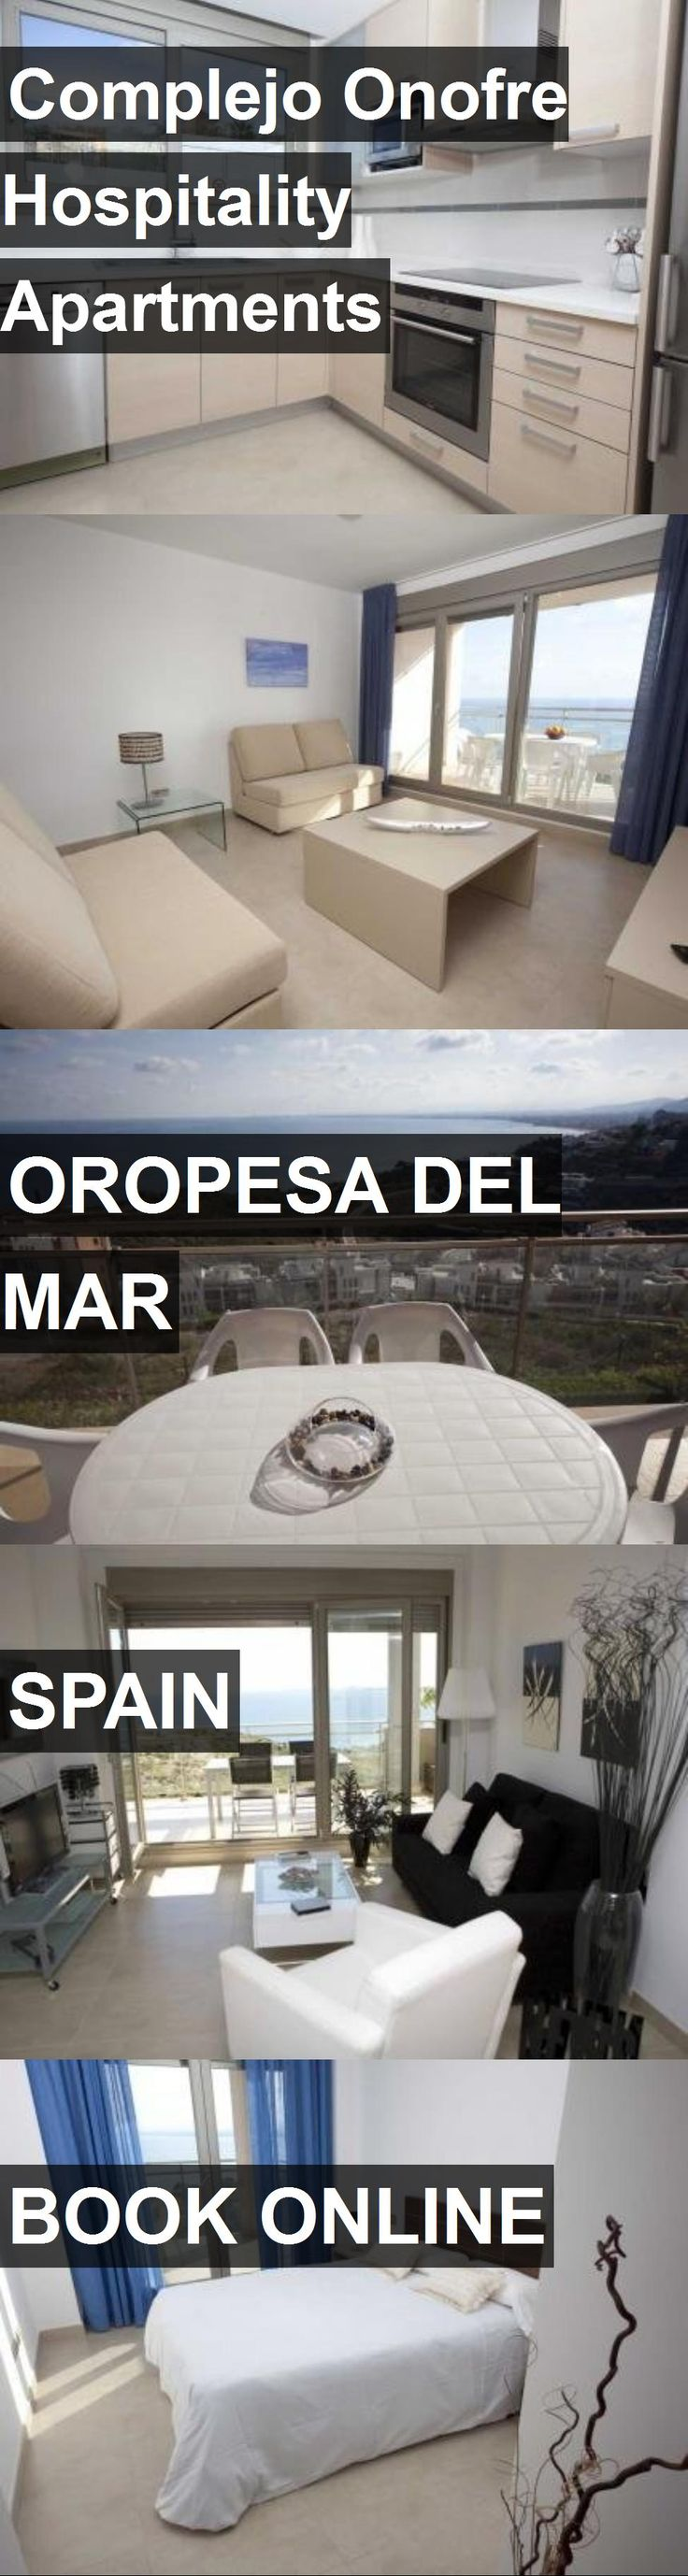 Complejo Onofre Hospitality Apartments in Oropesa del Mar, Spain. For more information, photos, reviews and best prices please follow the link. #Spain #OropesadelMar #travel #vacation #apartment